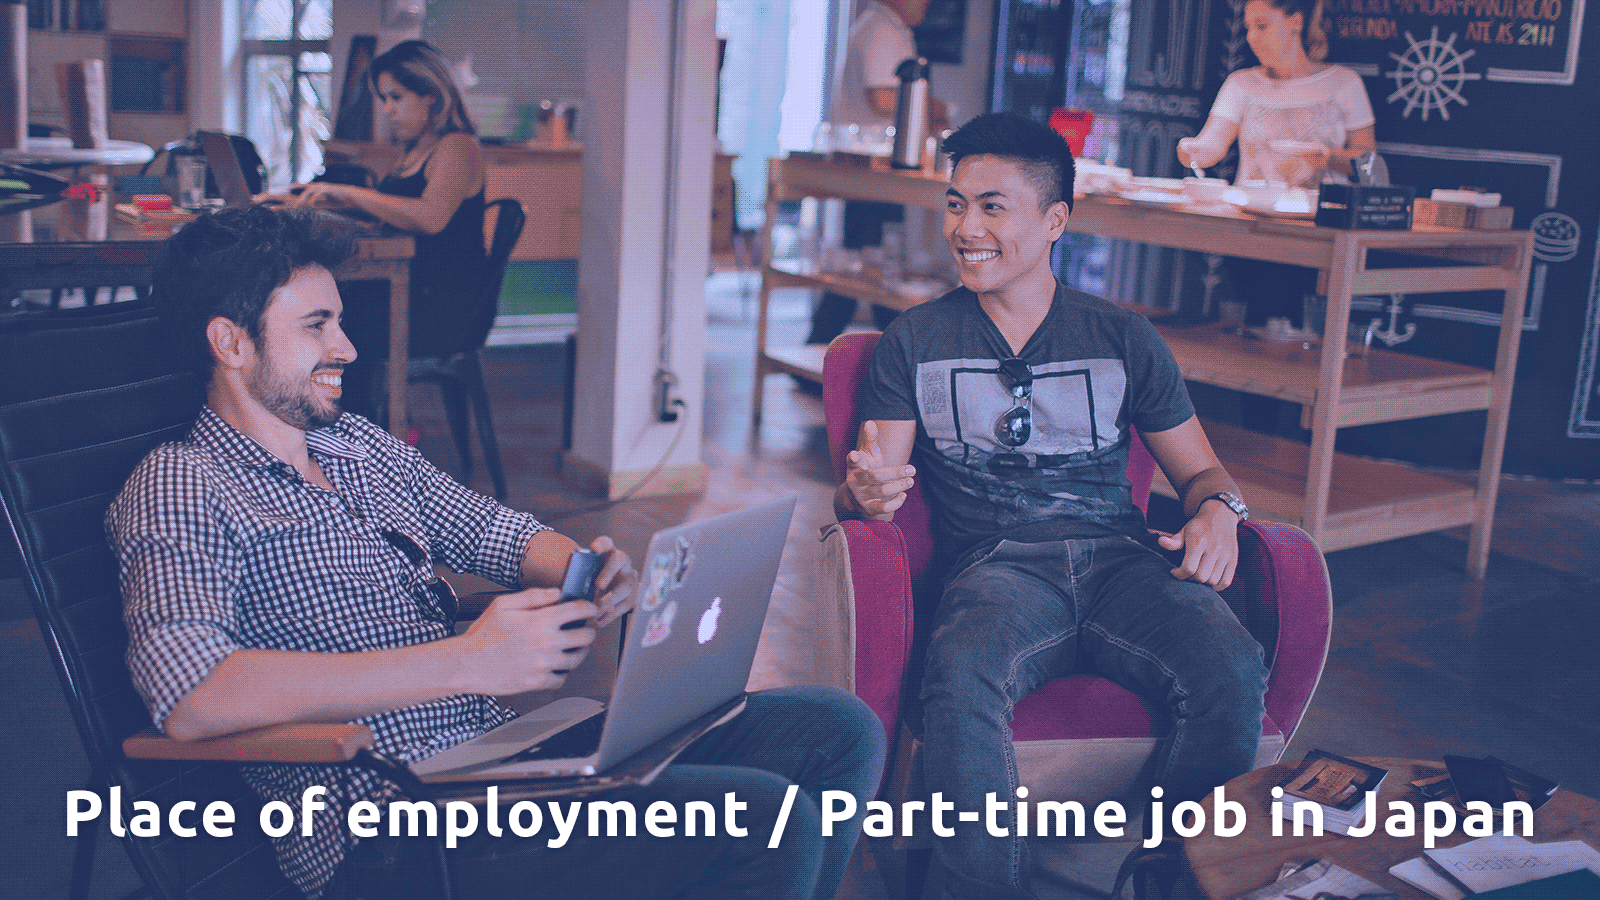 Place of employment / Part-time job | 日本の勤務先・アルバイト